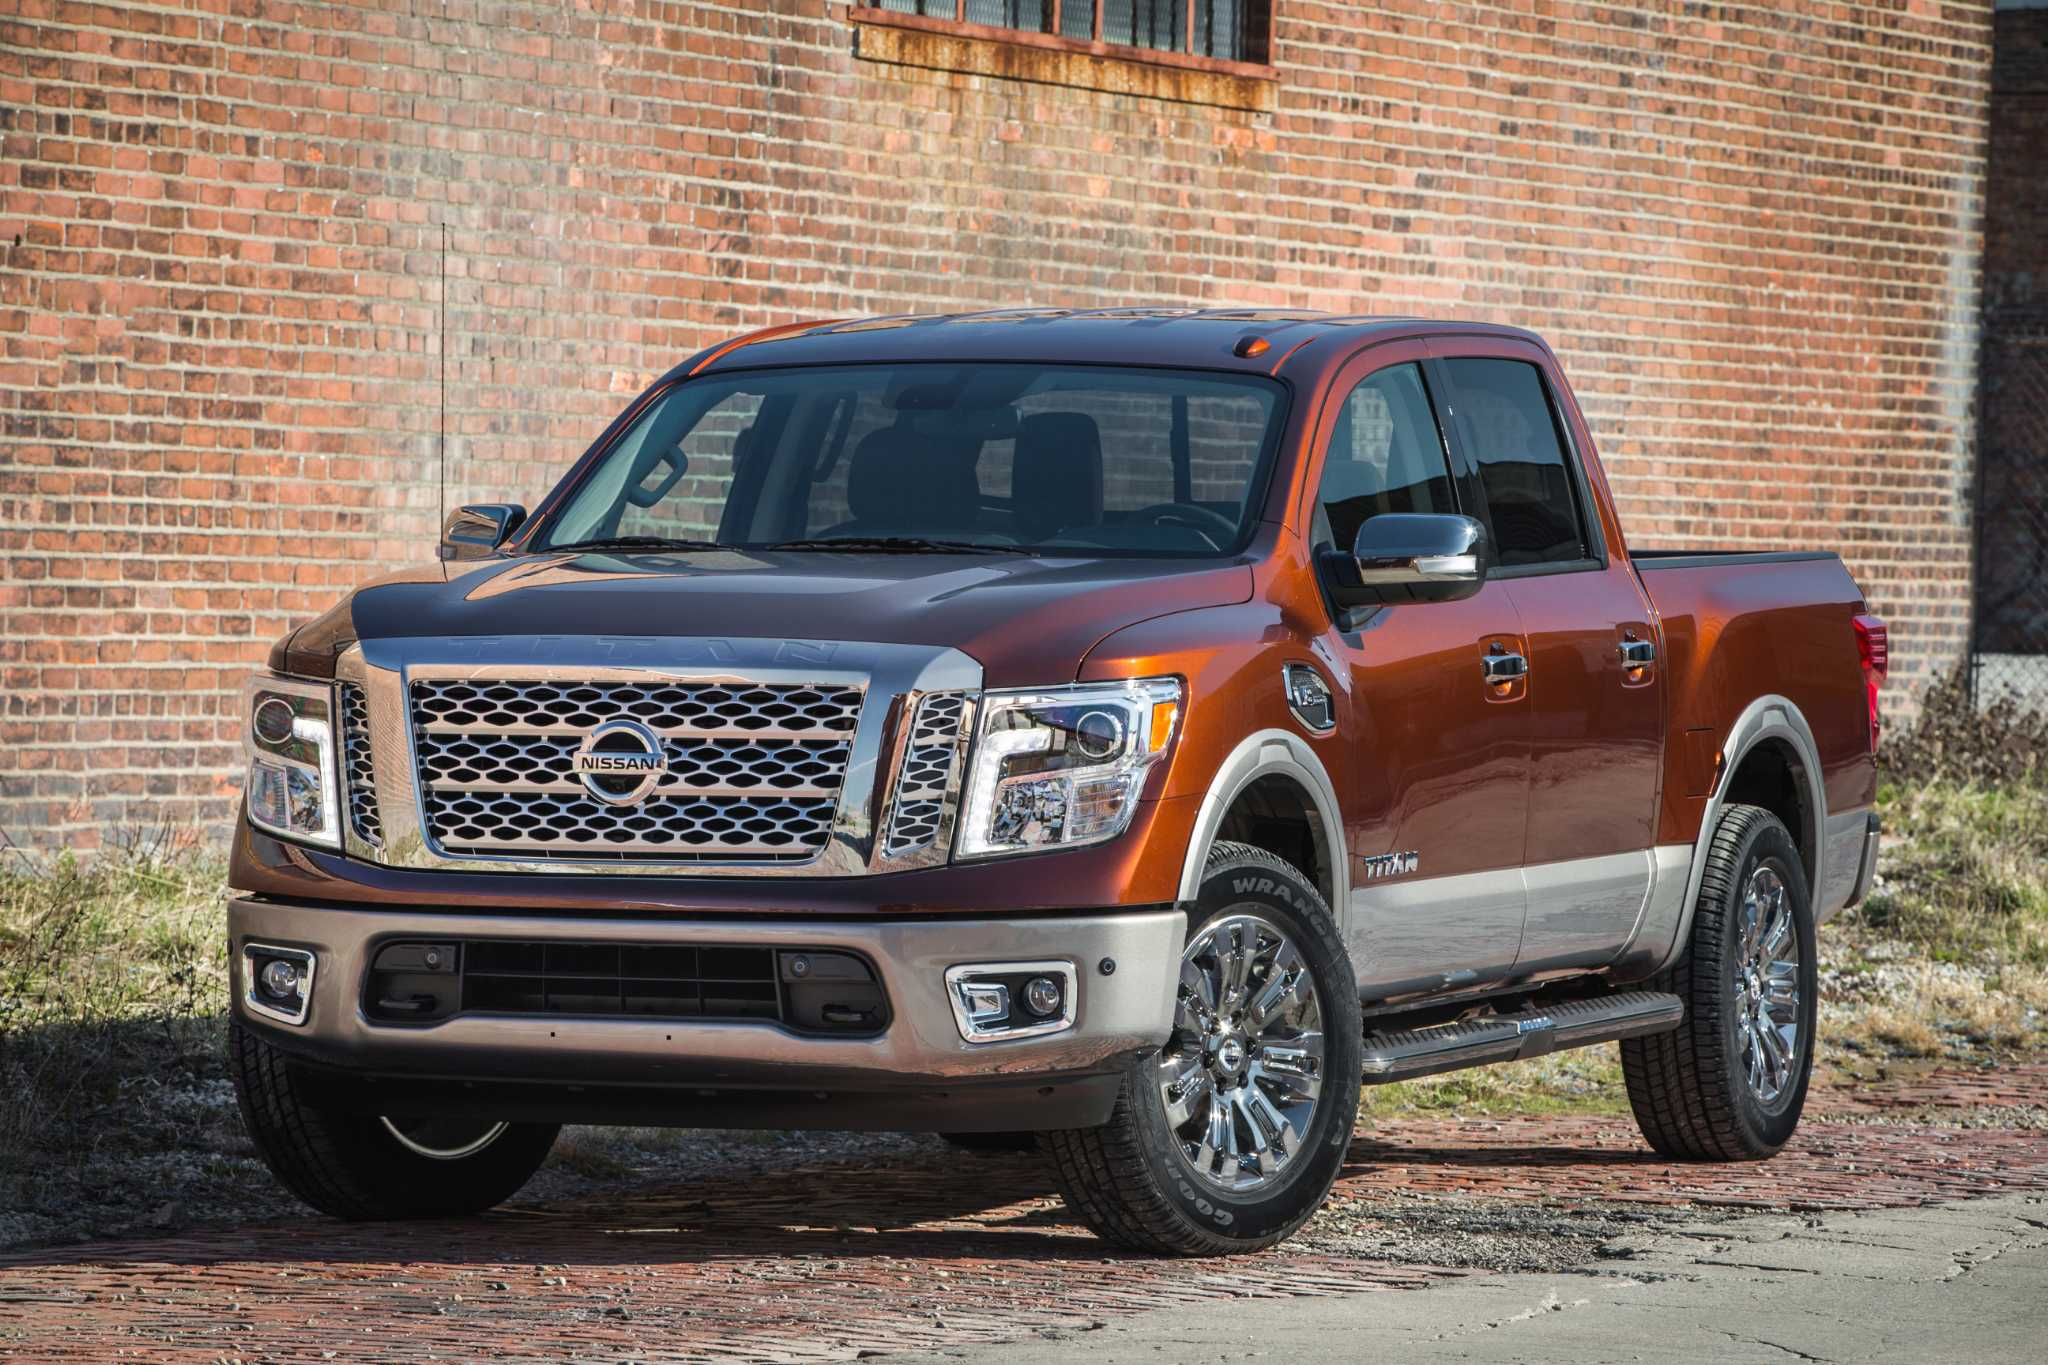 Nissan's back in the game with new 2017 Titan half-ton